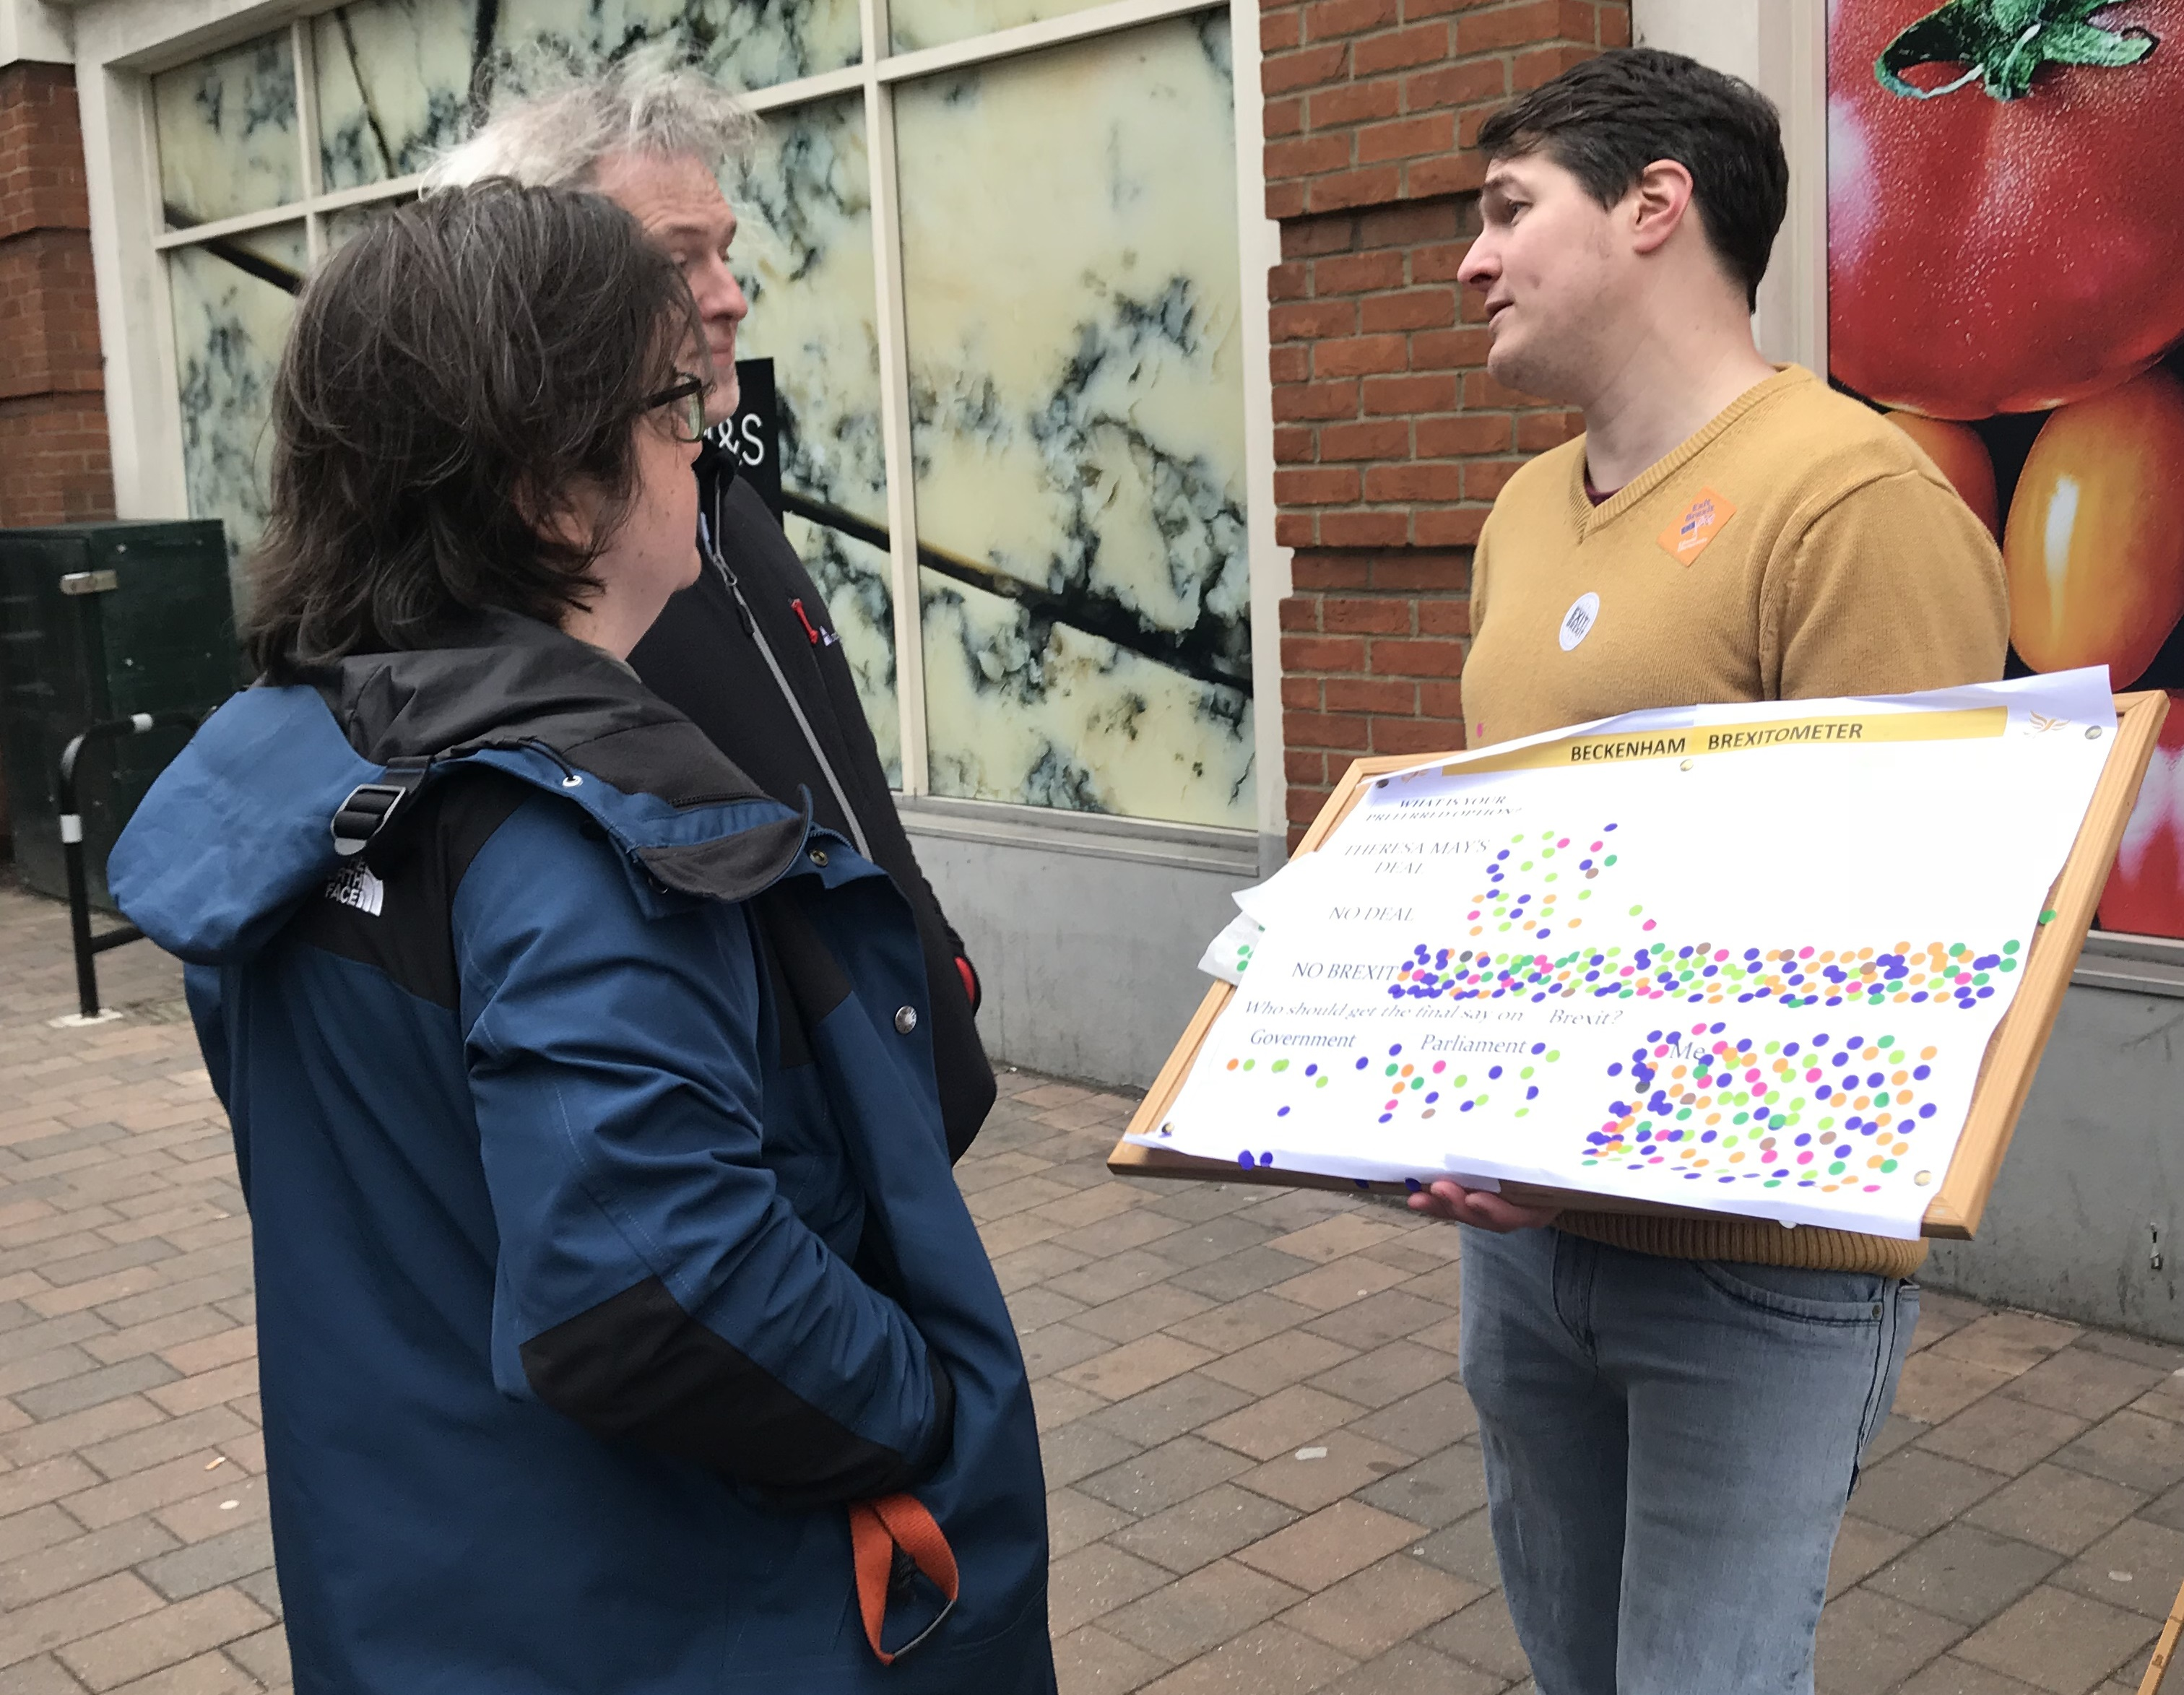 Brexitometer in Beckenham